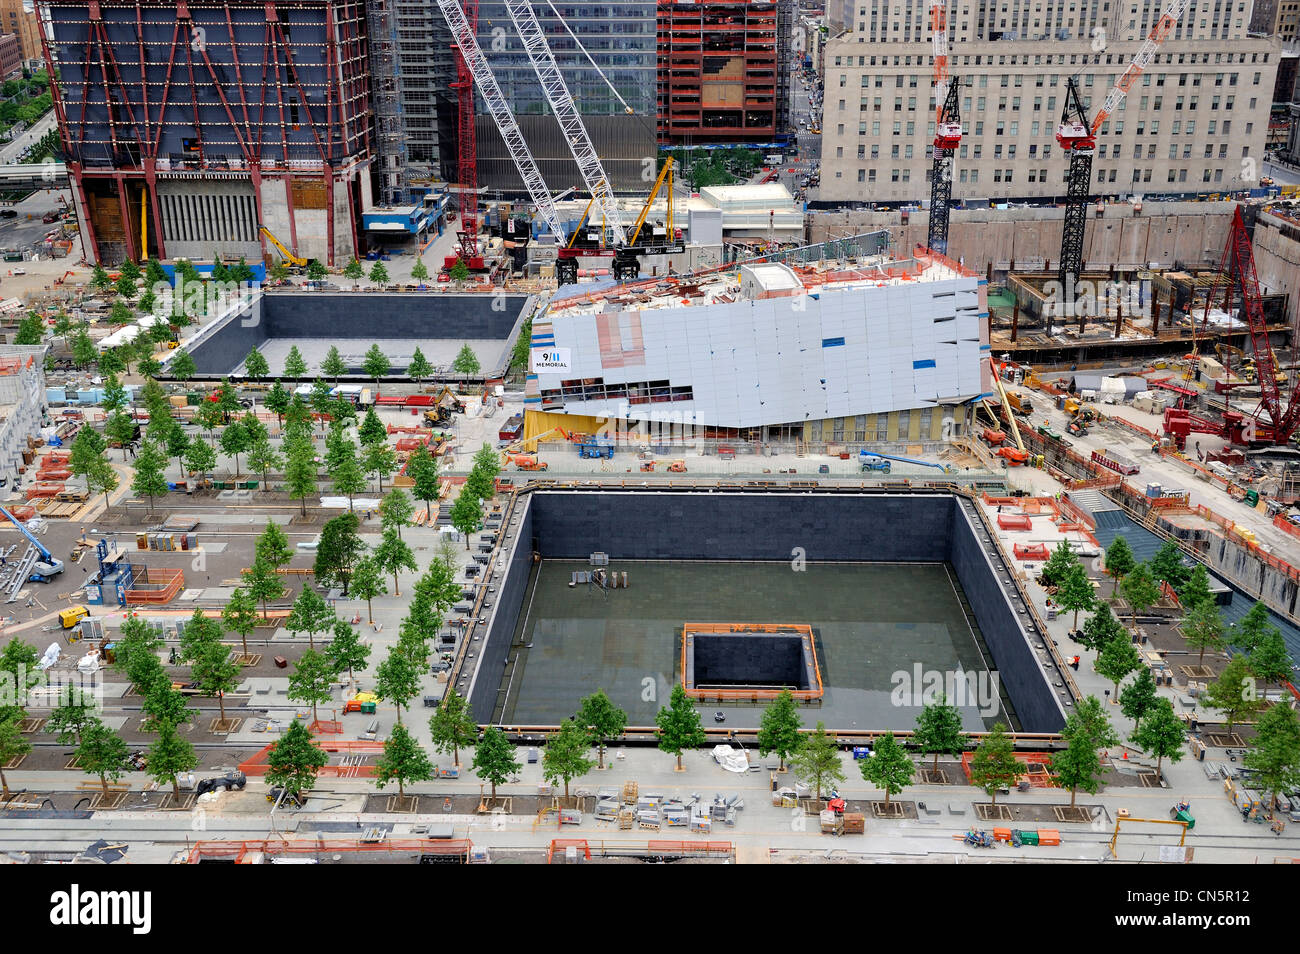 United States, New York City, Manhattan, reconstruction at Ground Zero, a memorial called Reflecting Absence is - Stock Image